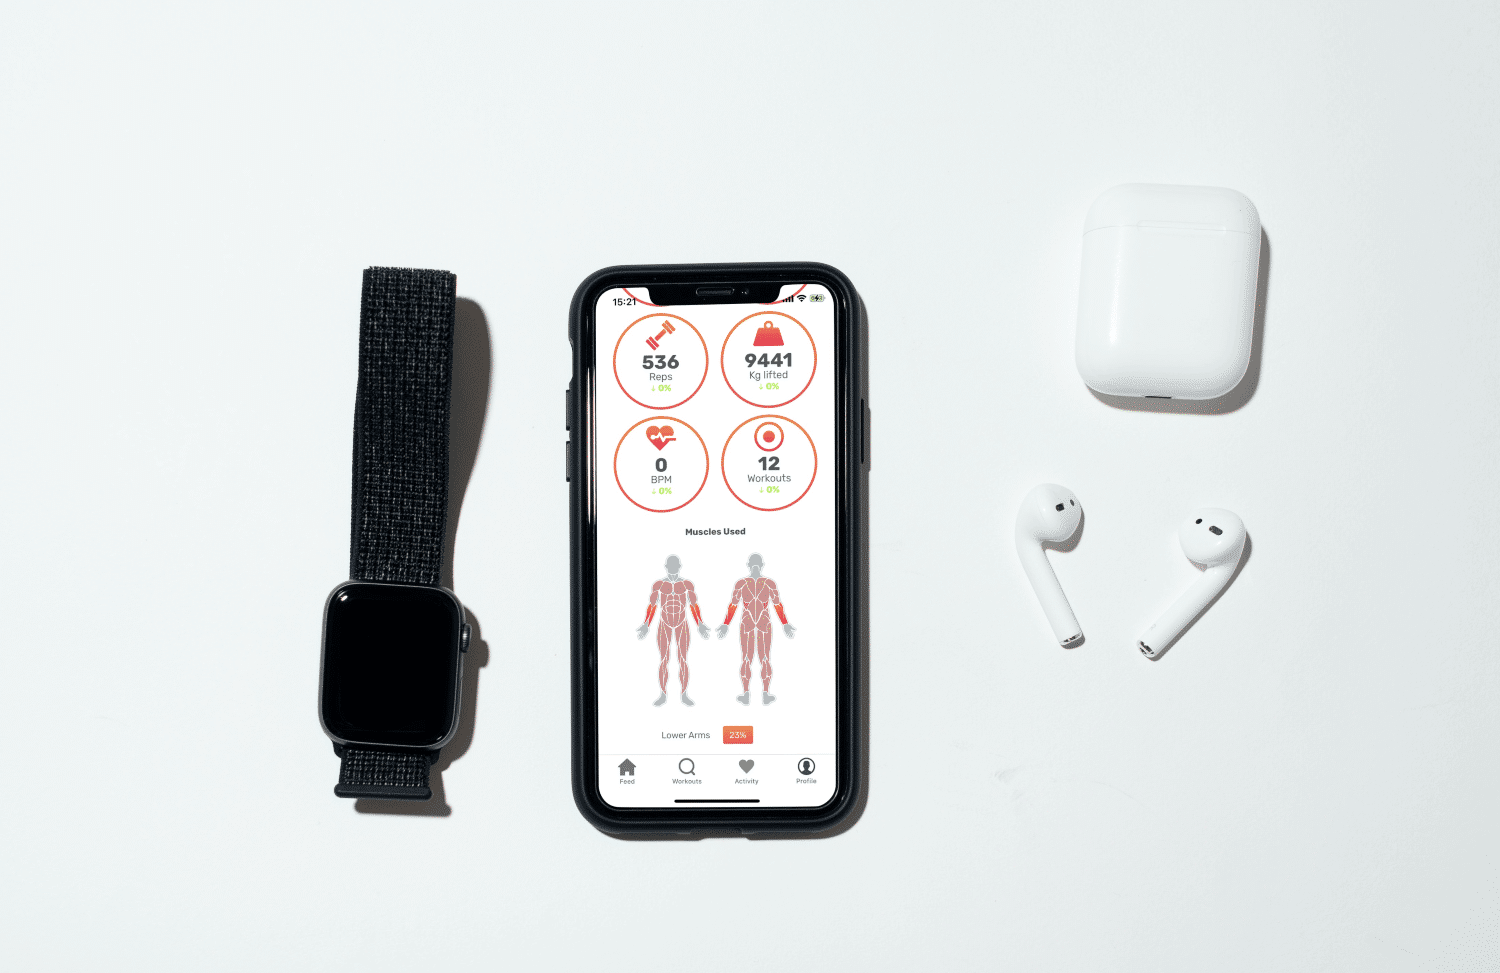 Advanced stats in sport and health apps